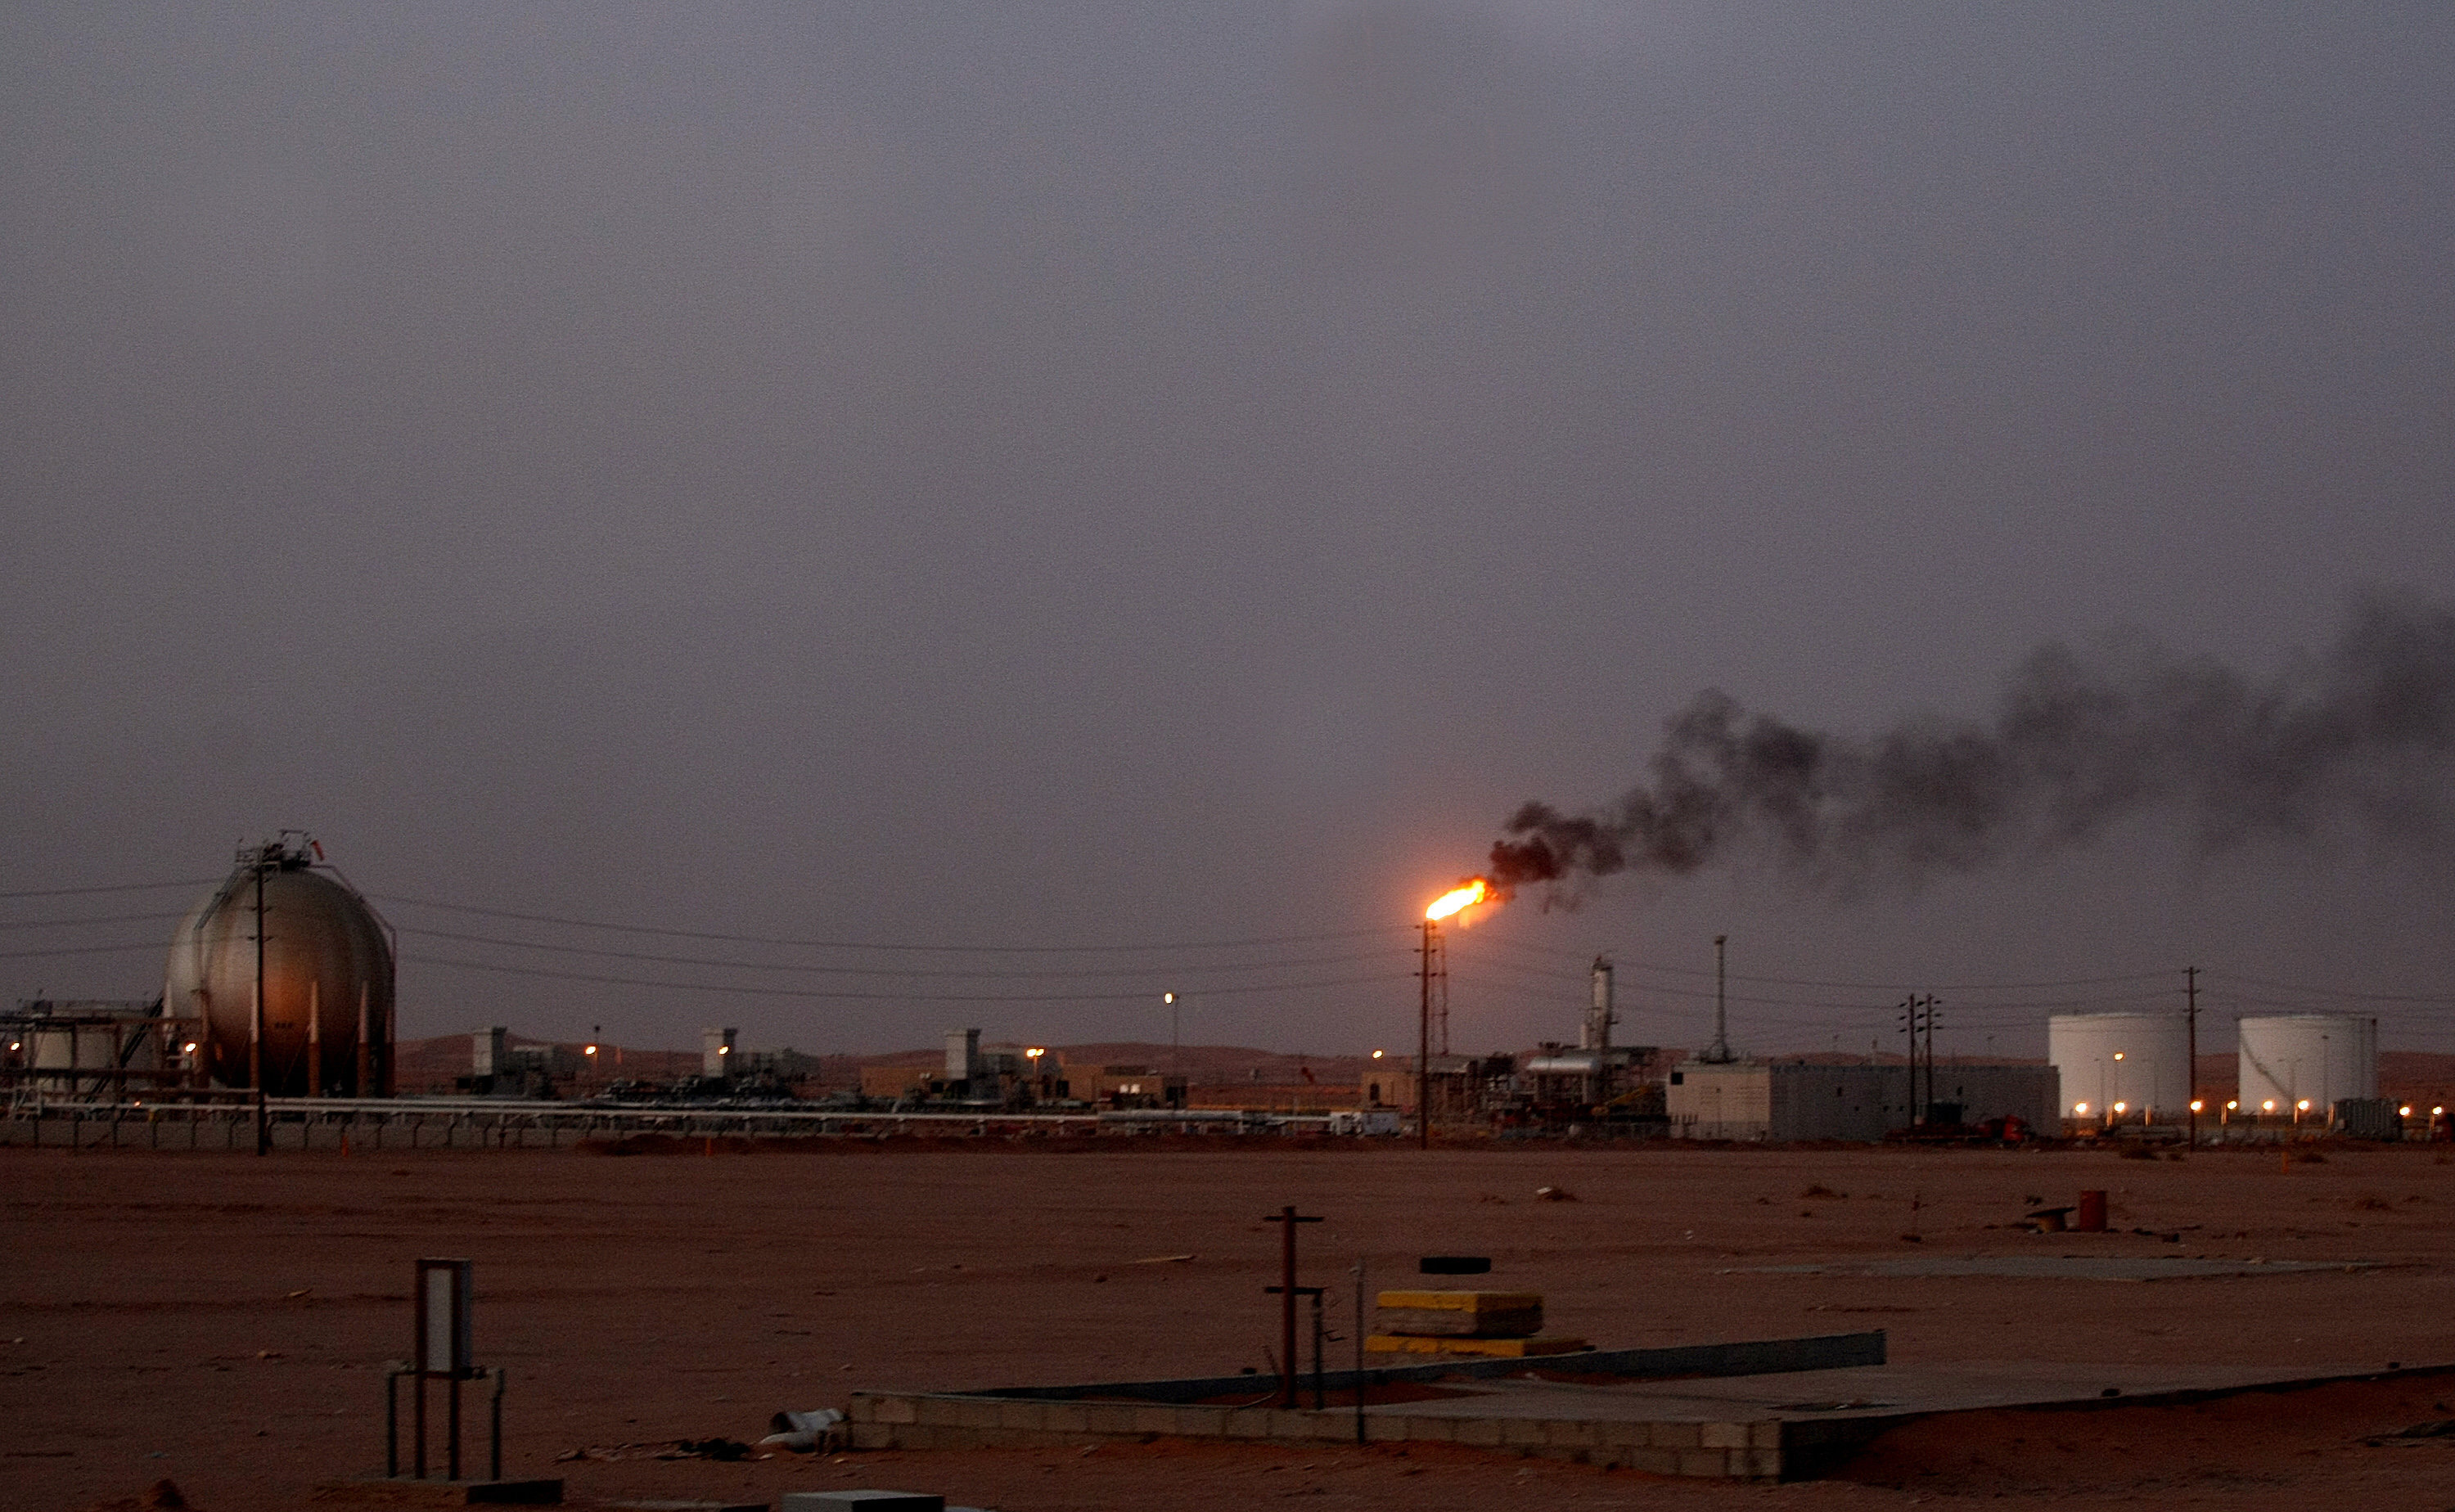 A flame from a Saudi Aramco (the national oil company) oil installation known as Pump 3 burns brightly during sunset in the Saudi Arabian desert near the oil-rich area Al-Khurais, 160 kms east of the capital Riyadh